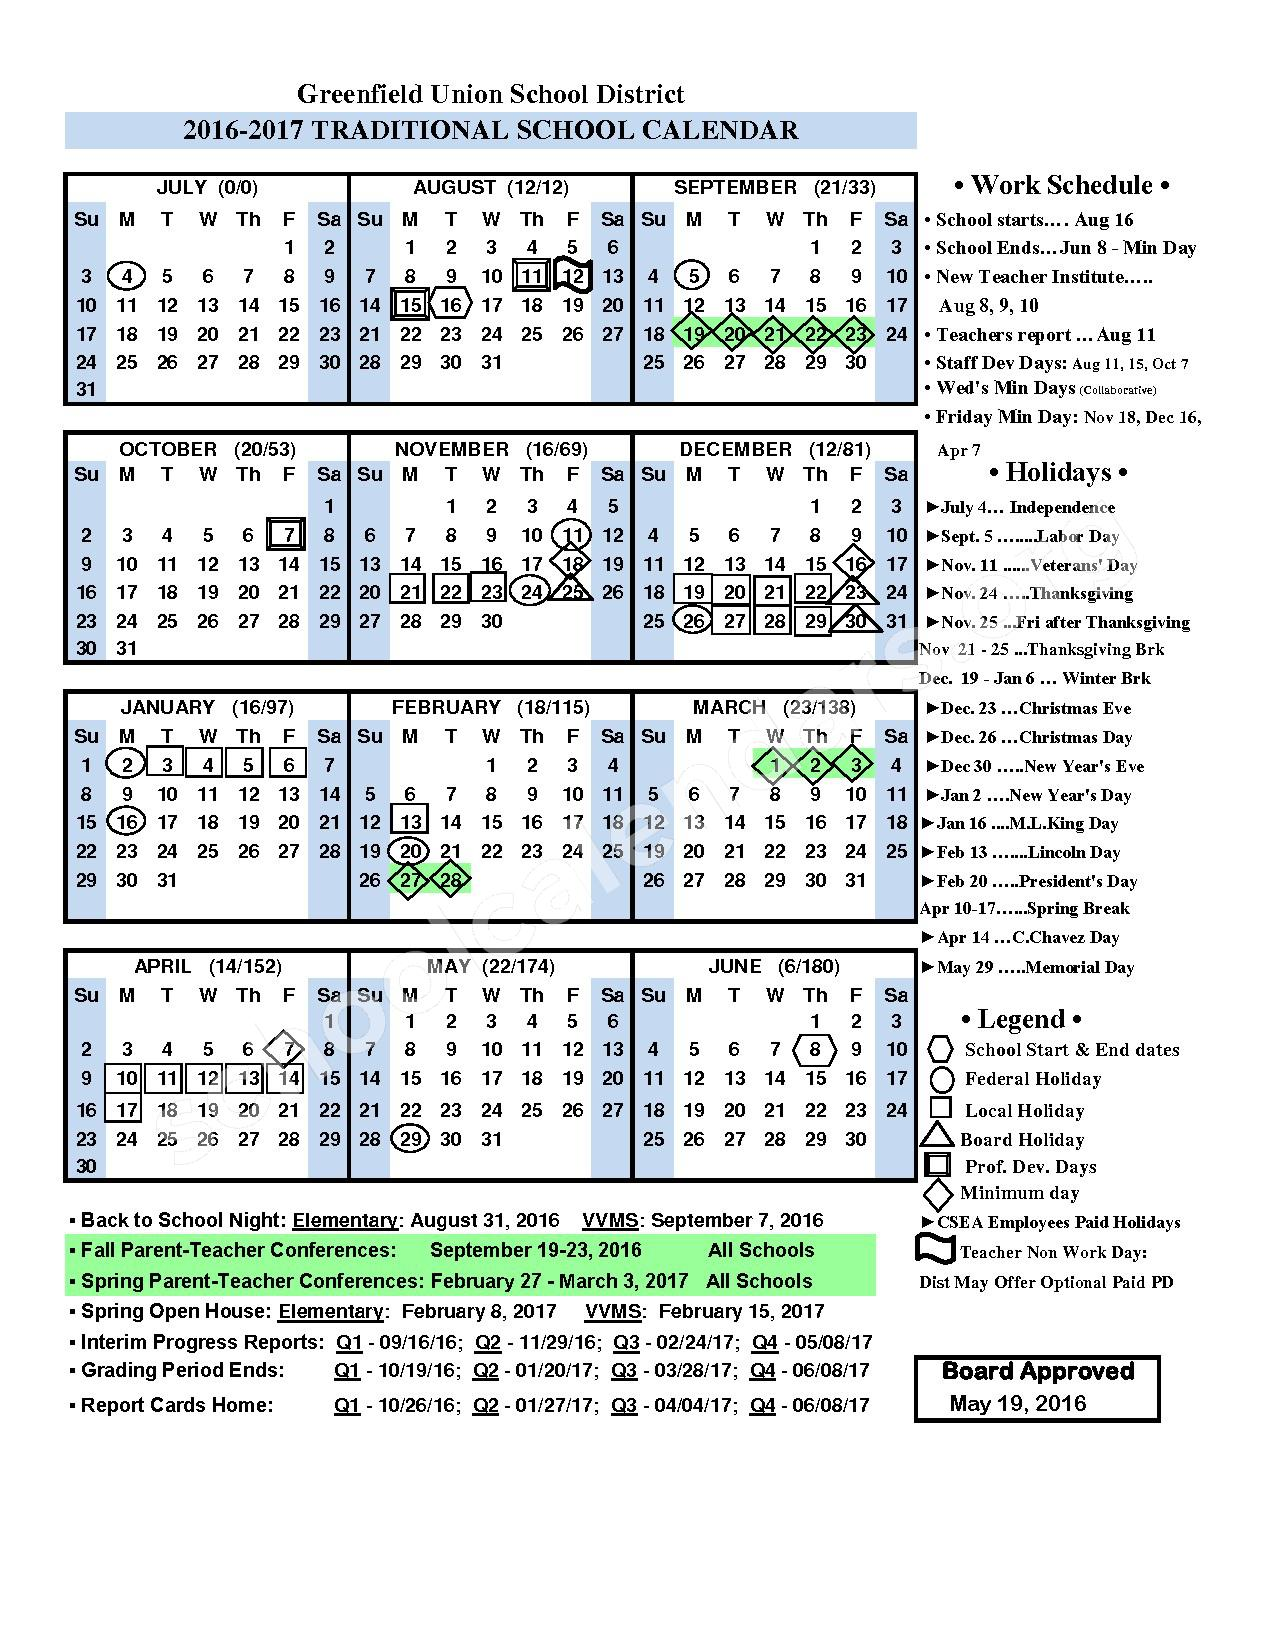 2016 - 2017 District Calendar – Greenfield Union School District (Greenfield) – page 1